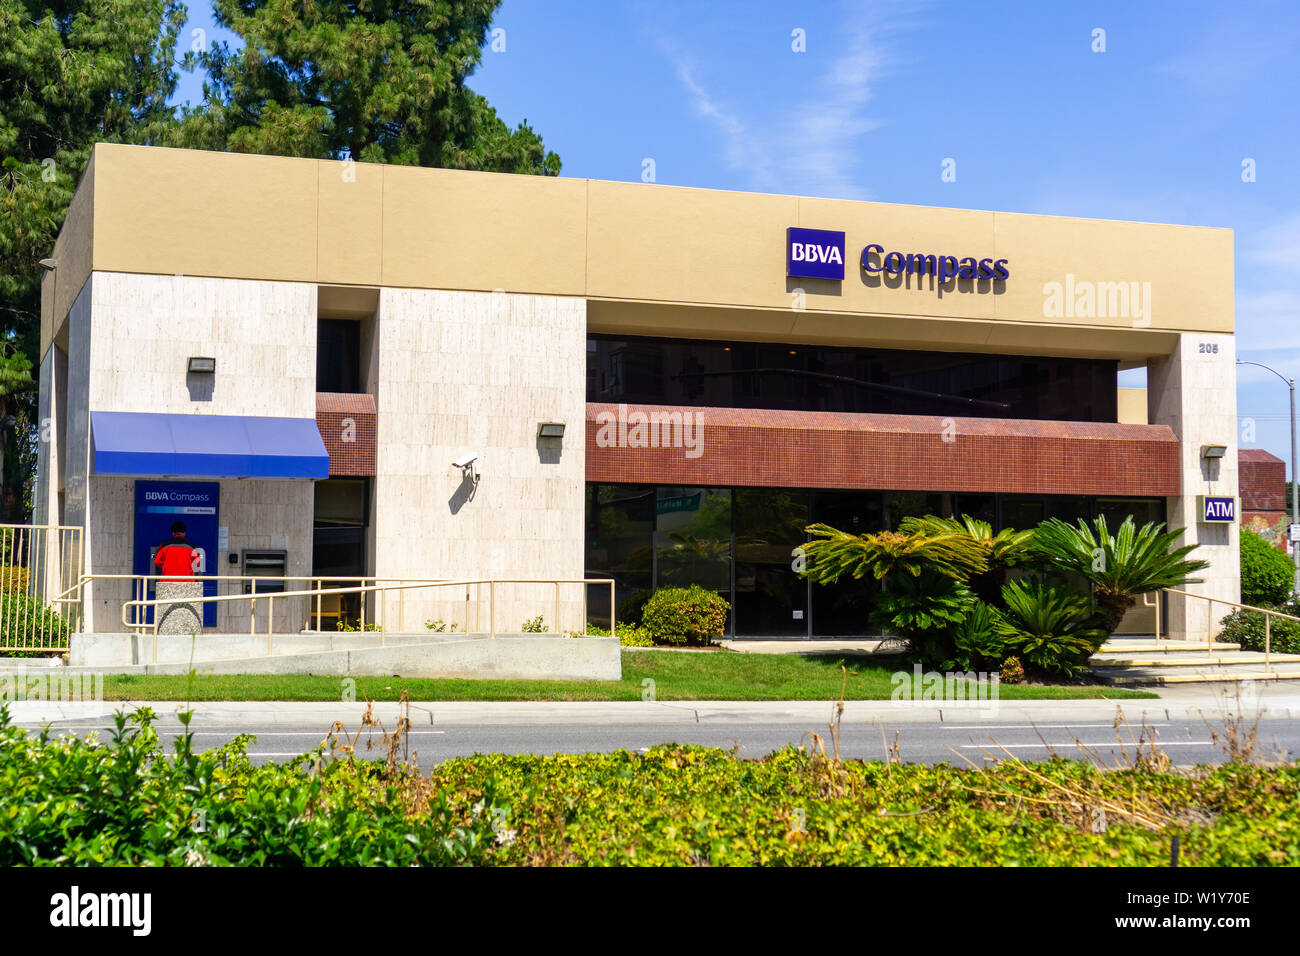 July 1, 2019 Sunnyvale / CA / USA - BBVA Compass Bancshares, Inc. (a bank holding company) branch close to downtown Sunnyvale, South San Francisco bay - Stock Image